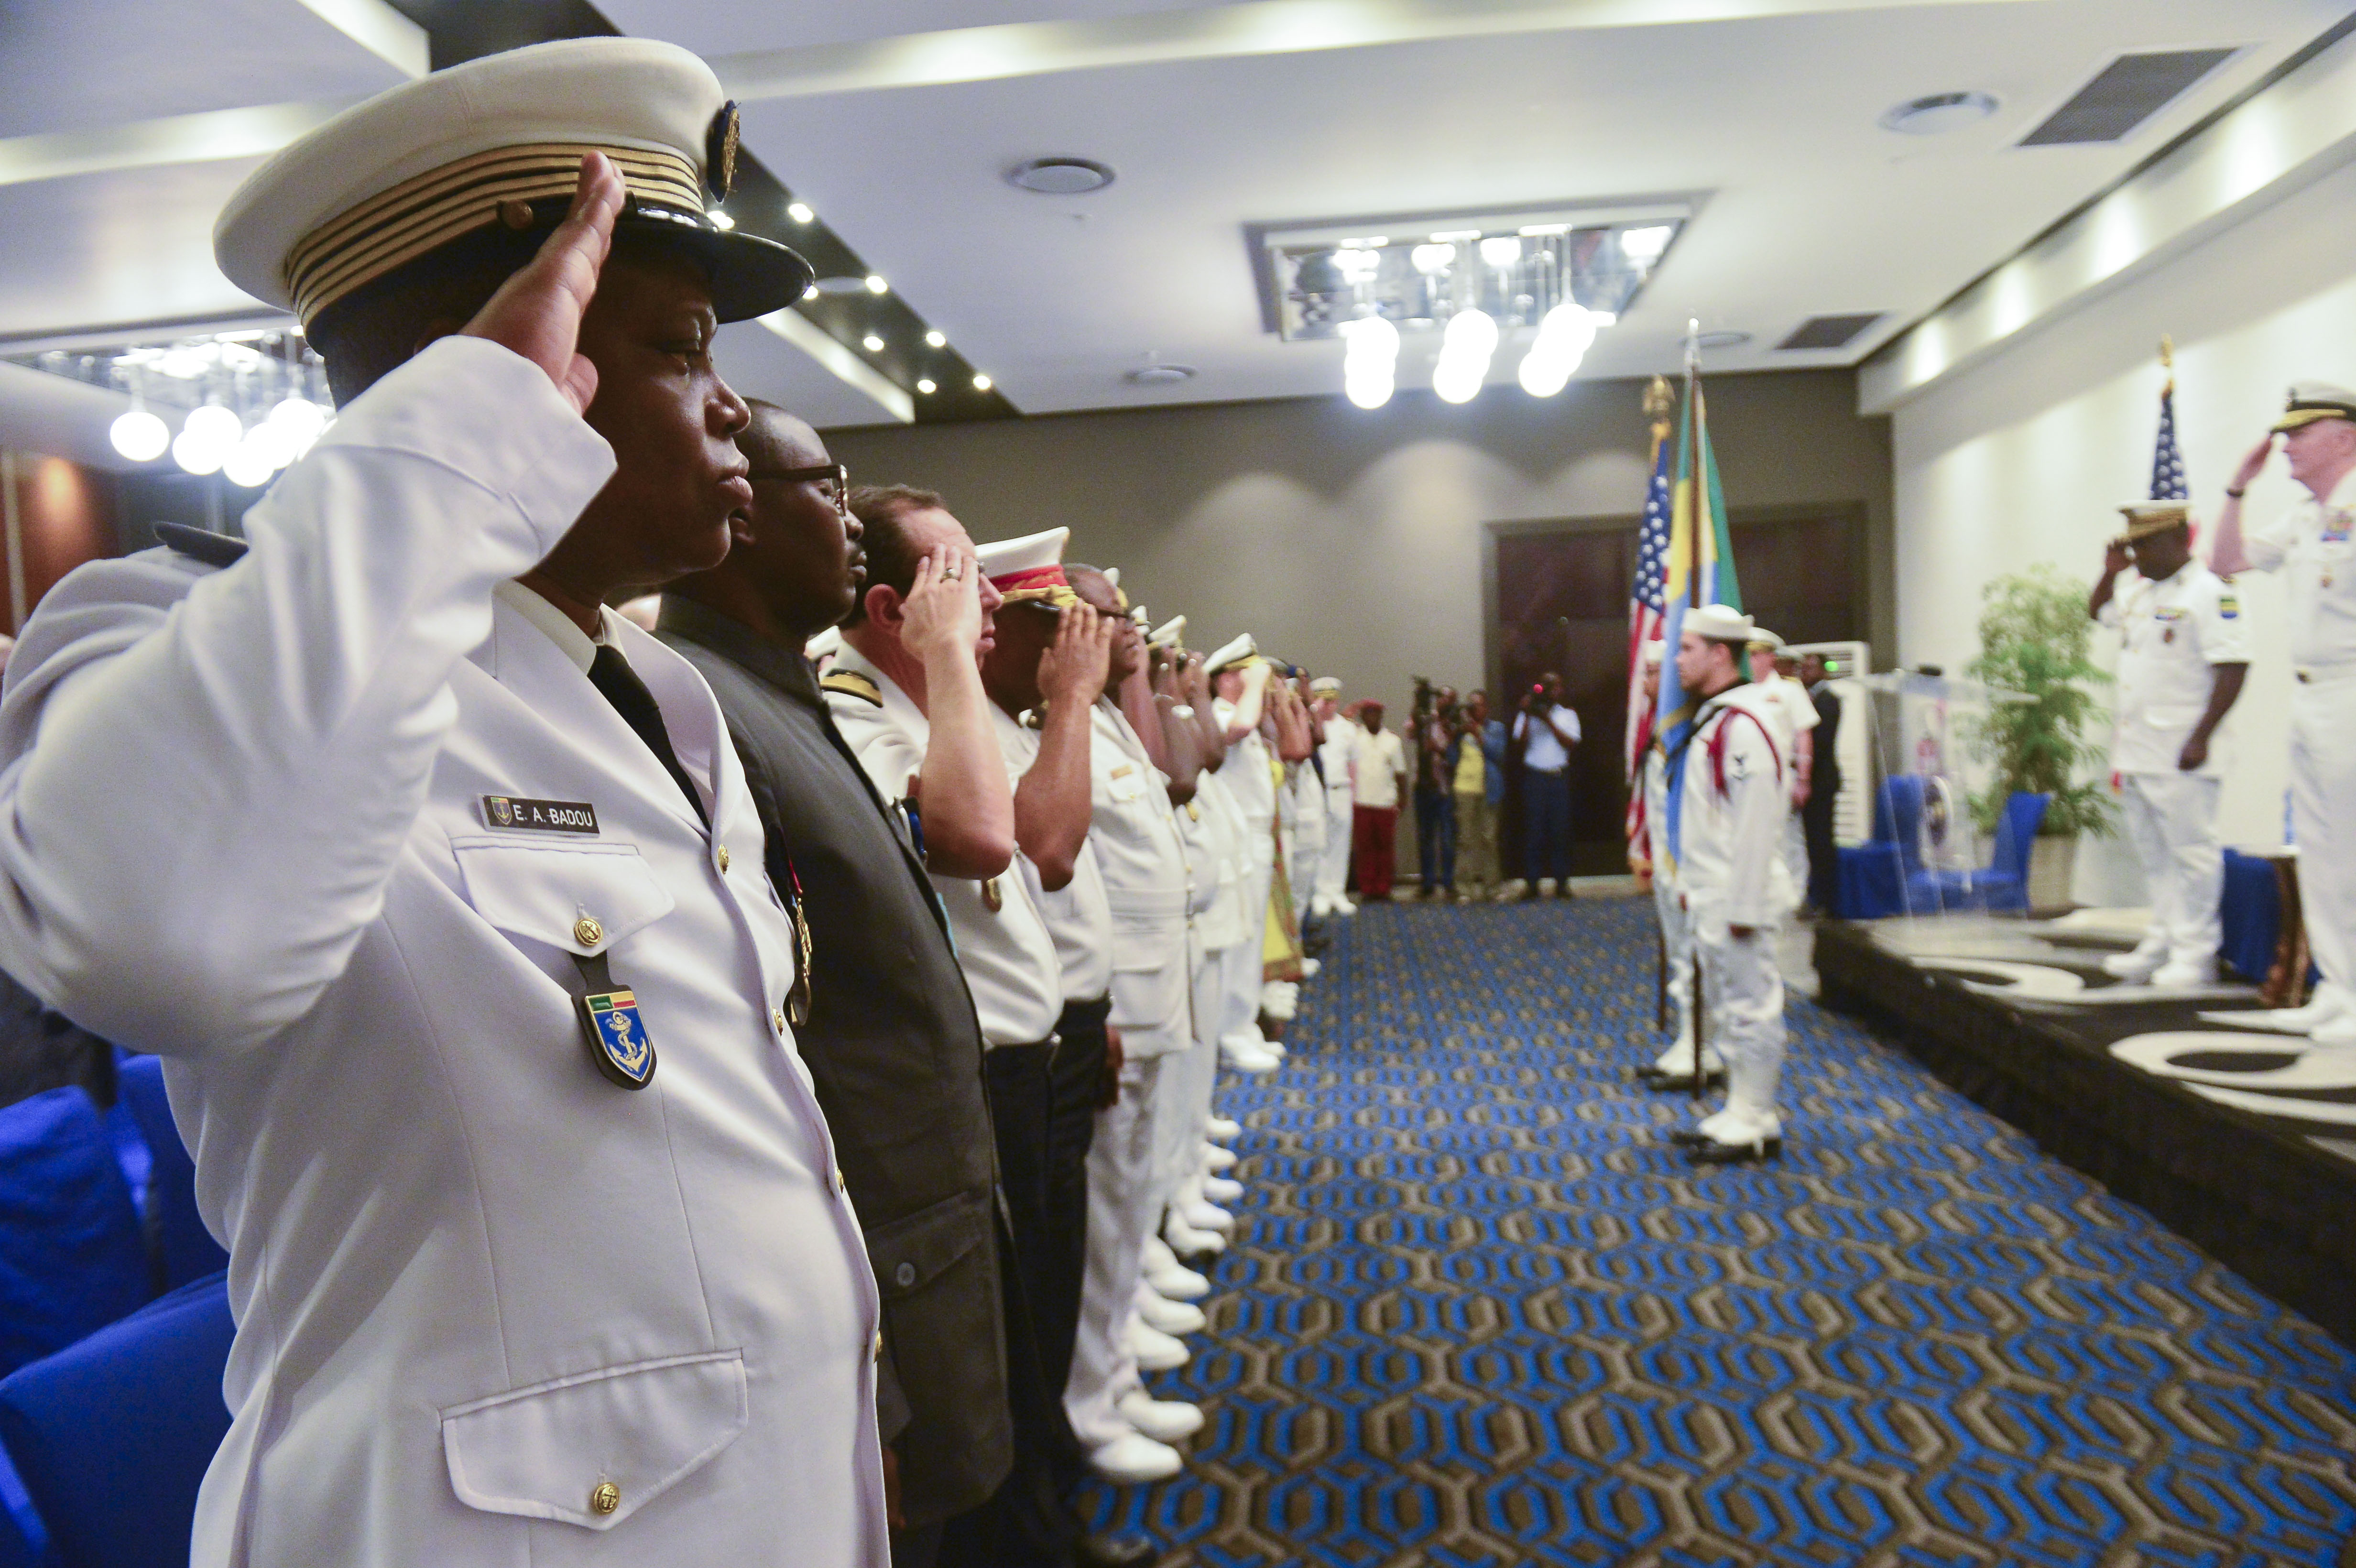 180329-N-QR145-271 LIBREVILLE, Gabon (March 29, 2018) Blue Ridge-class command and control ship USS Mount Whitney's (LCC 20) color guard team presents the colors during the exercise Obangame Express 2018 closing ceremonies in Libreville, Gabon, March 29. Exercise Obangame Express 2018, which is sponsored by U.S. Africa Command (AFRICOM), is designed to improve regional cooperation, maritime domain awareness (MDA), information-sharing practices, and tactical interdiction expertise to enhance the collective capabilities of Gulf of Guinea and West African nations to counter sea-based illicit activity. (U.S. Navy photo by Mass Communication Specialist 3rd Class Krystina Coffey/Released)